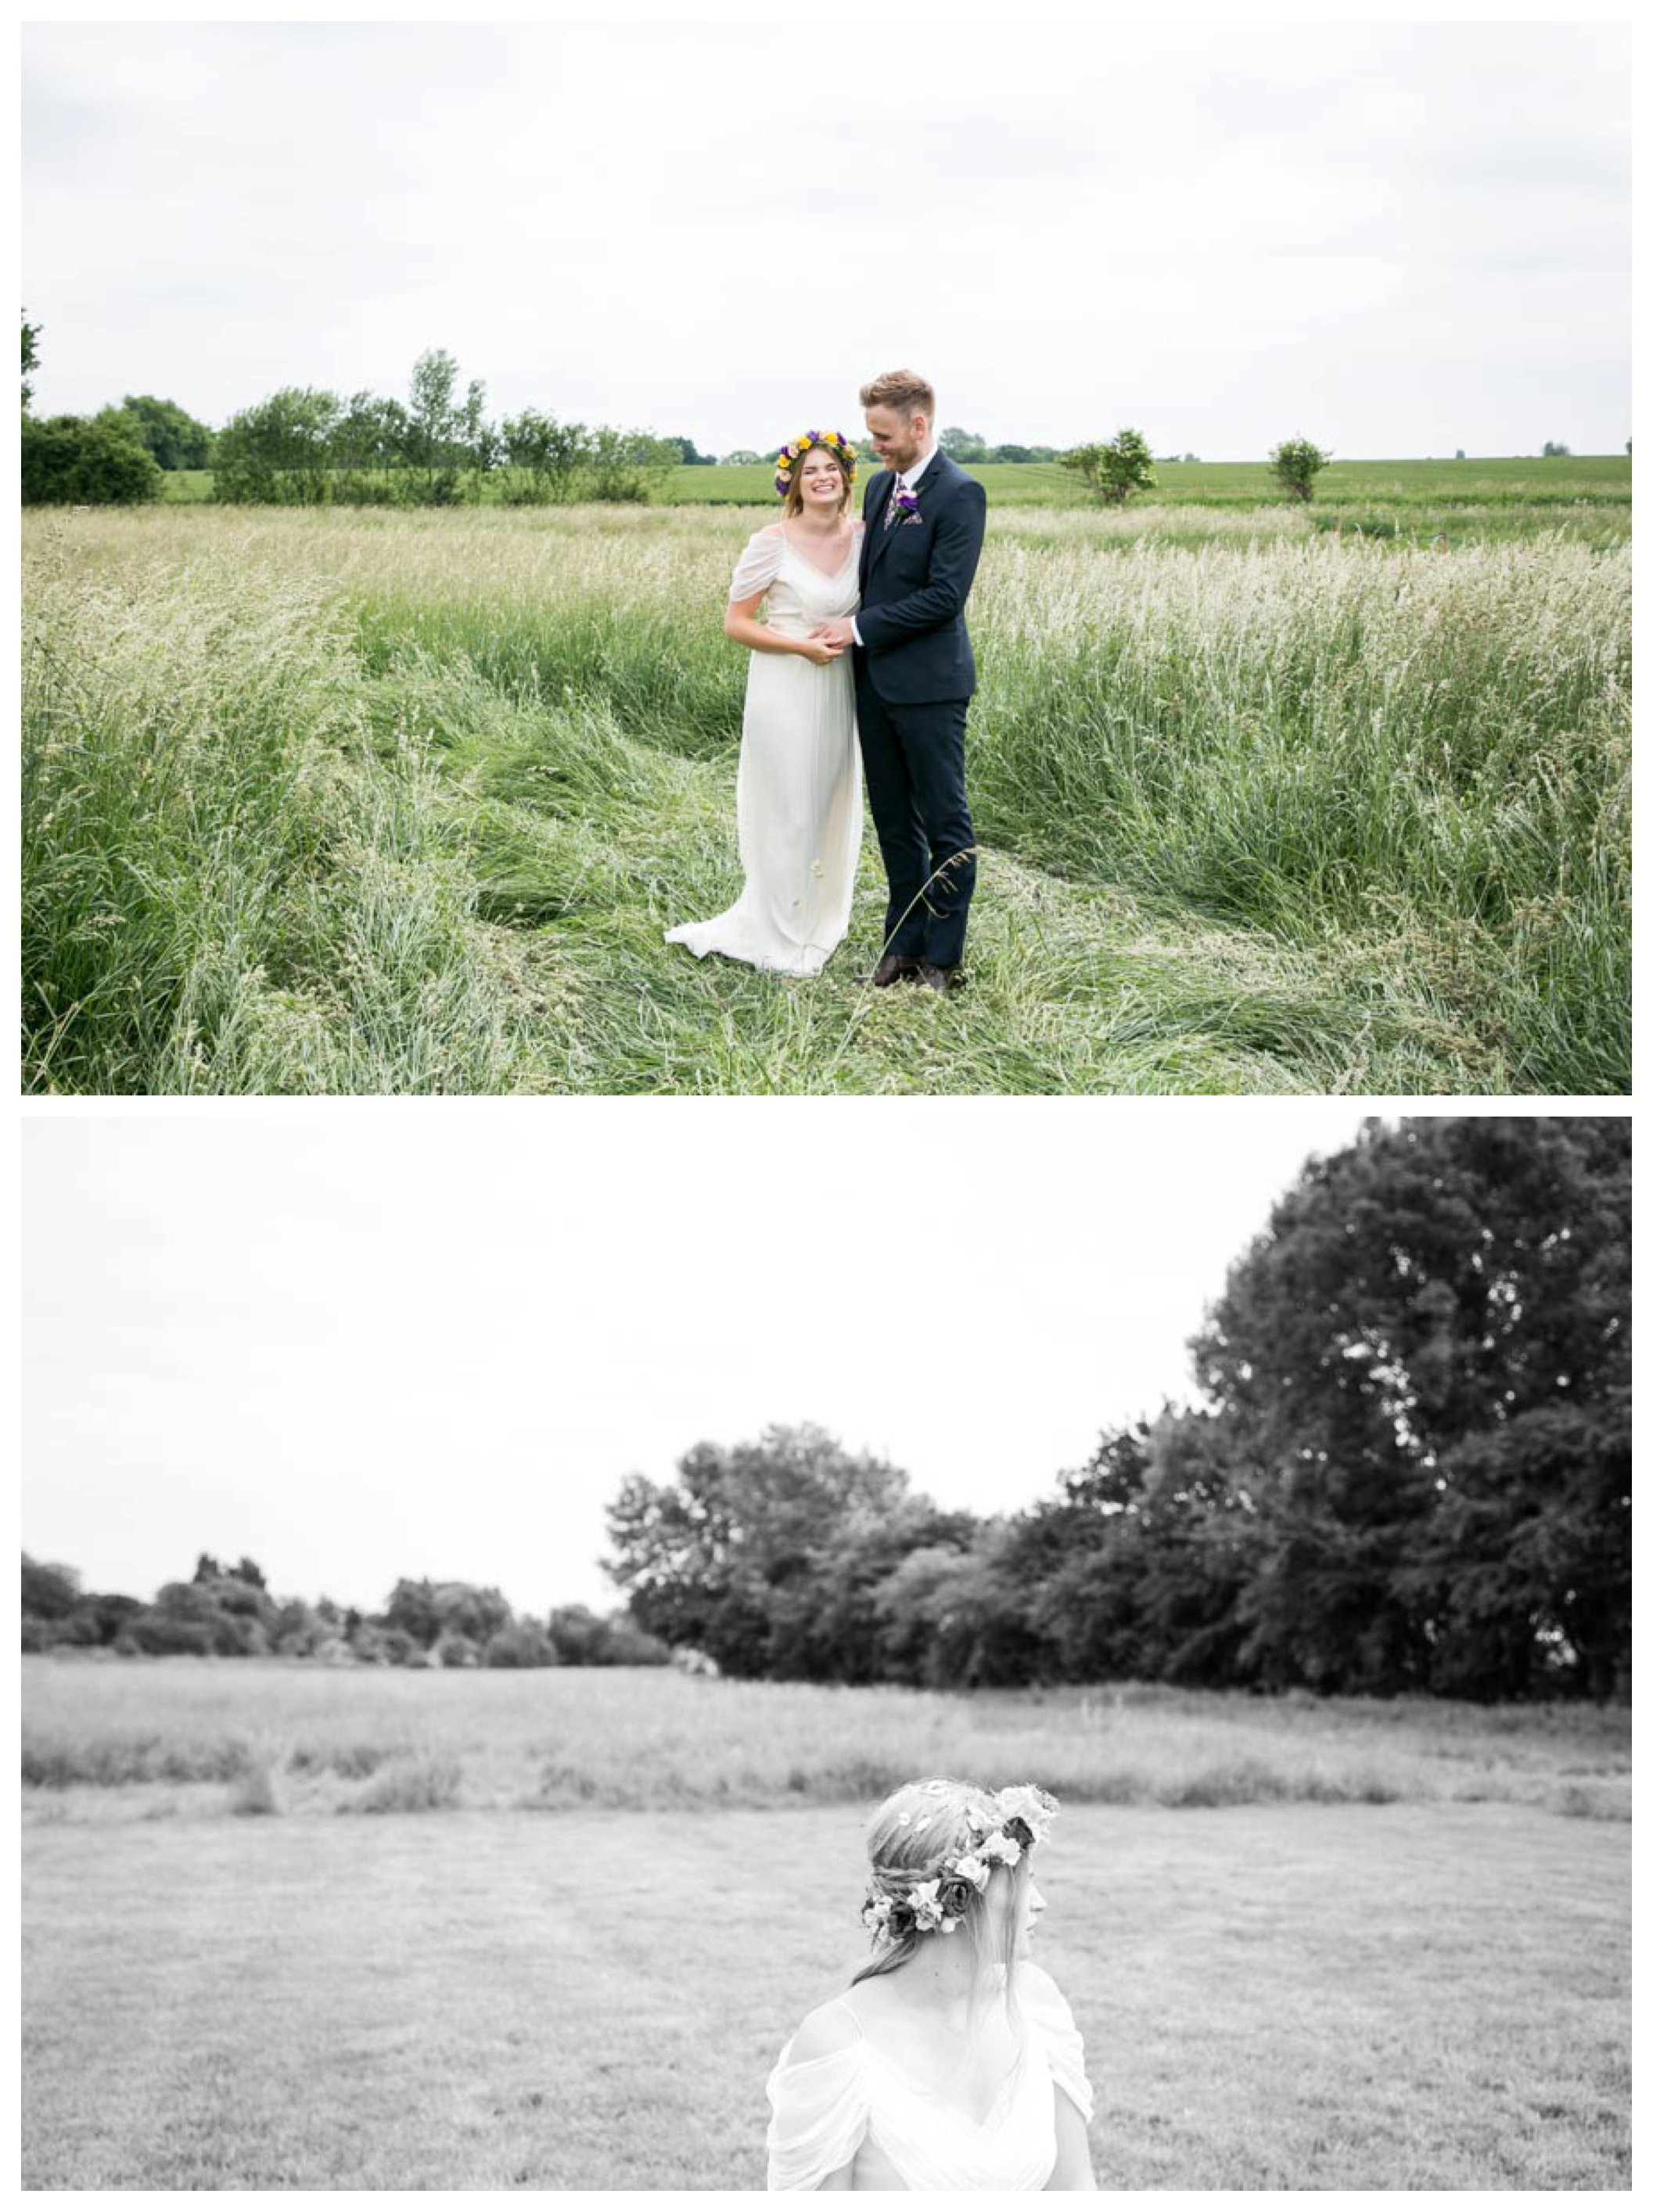 laughing couple in a field after their outdoor wedding ceremony